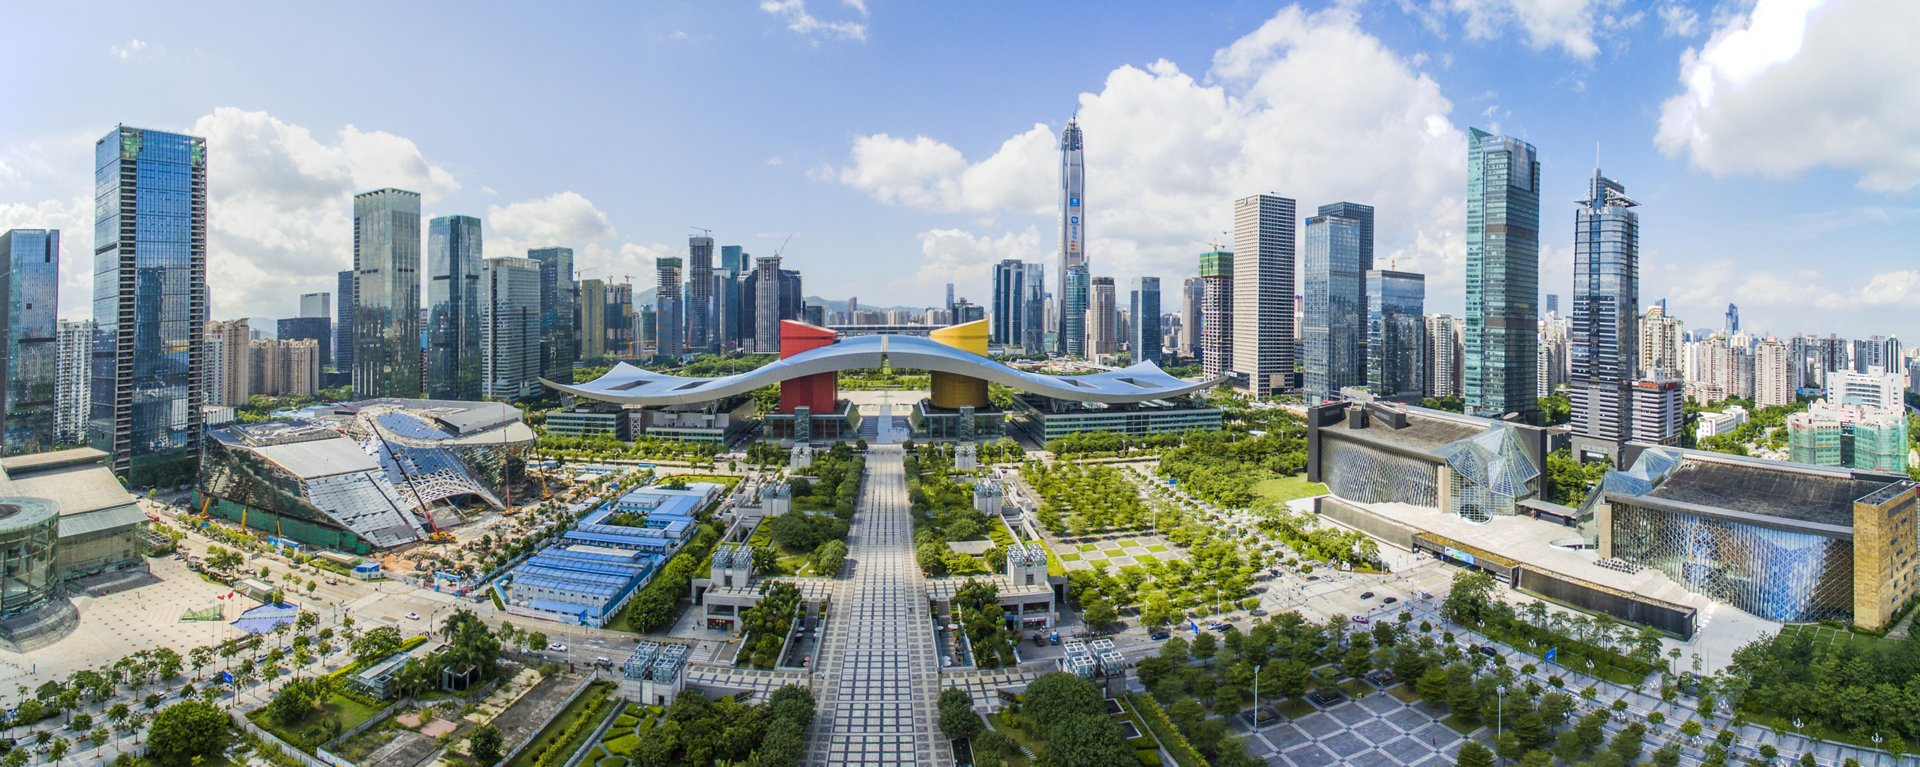 Only a few decades ago, Shenzhen was a collection of quiet farming and fishing villages. Today, the city is among the world's leading innovation hotspots—in other words, the perfect location for our Airbus China Innovation Centre (ACIC).